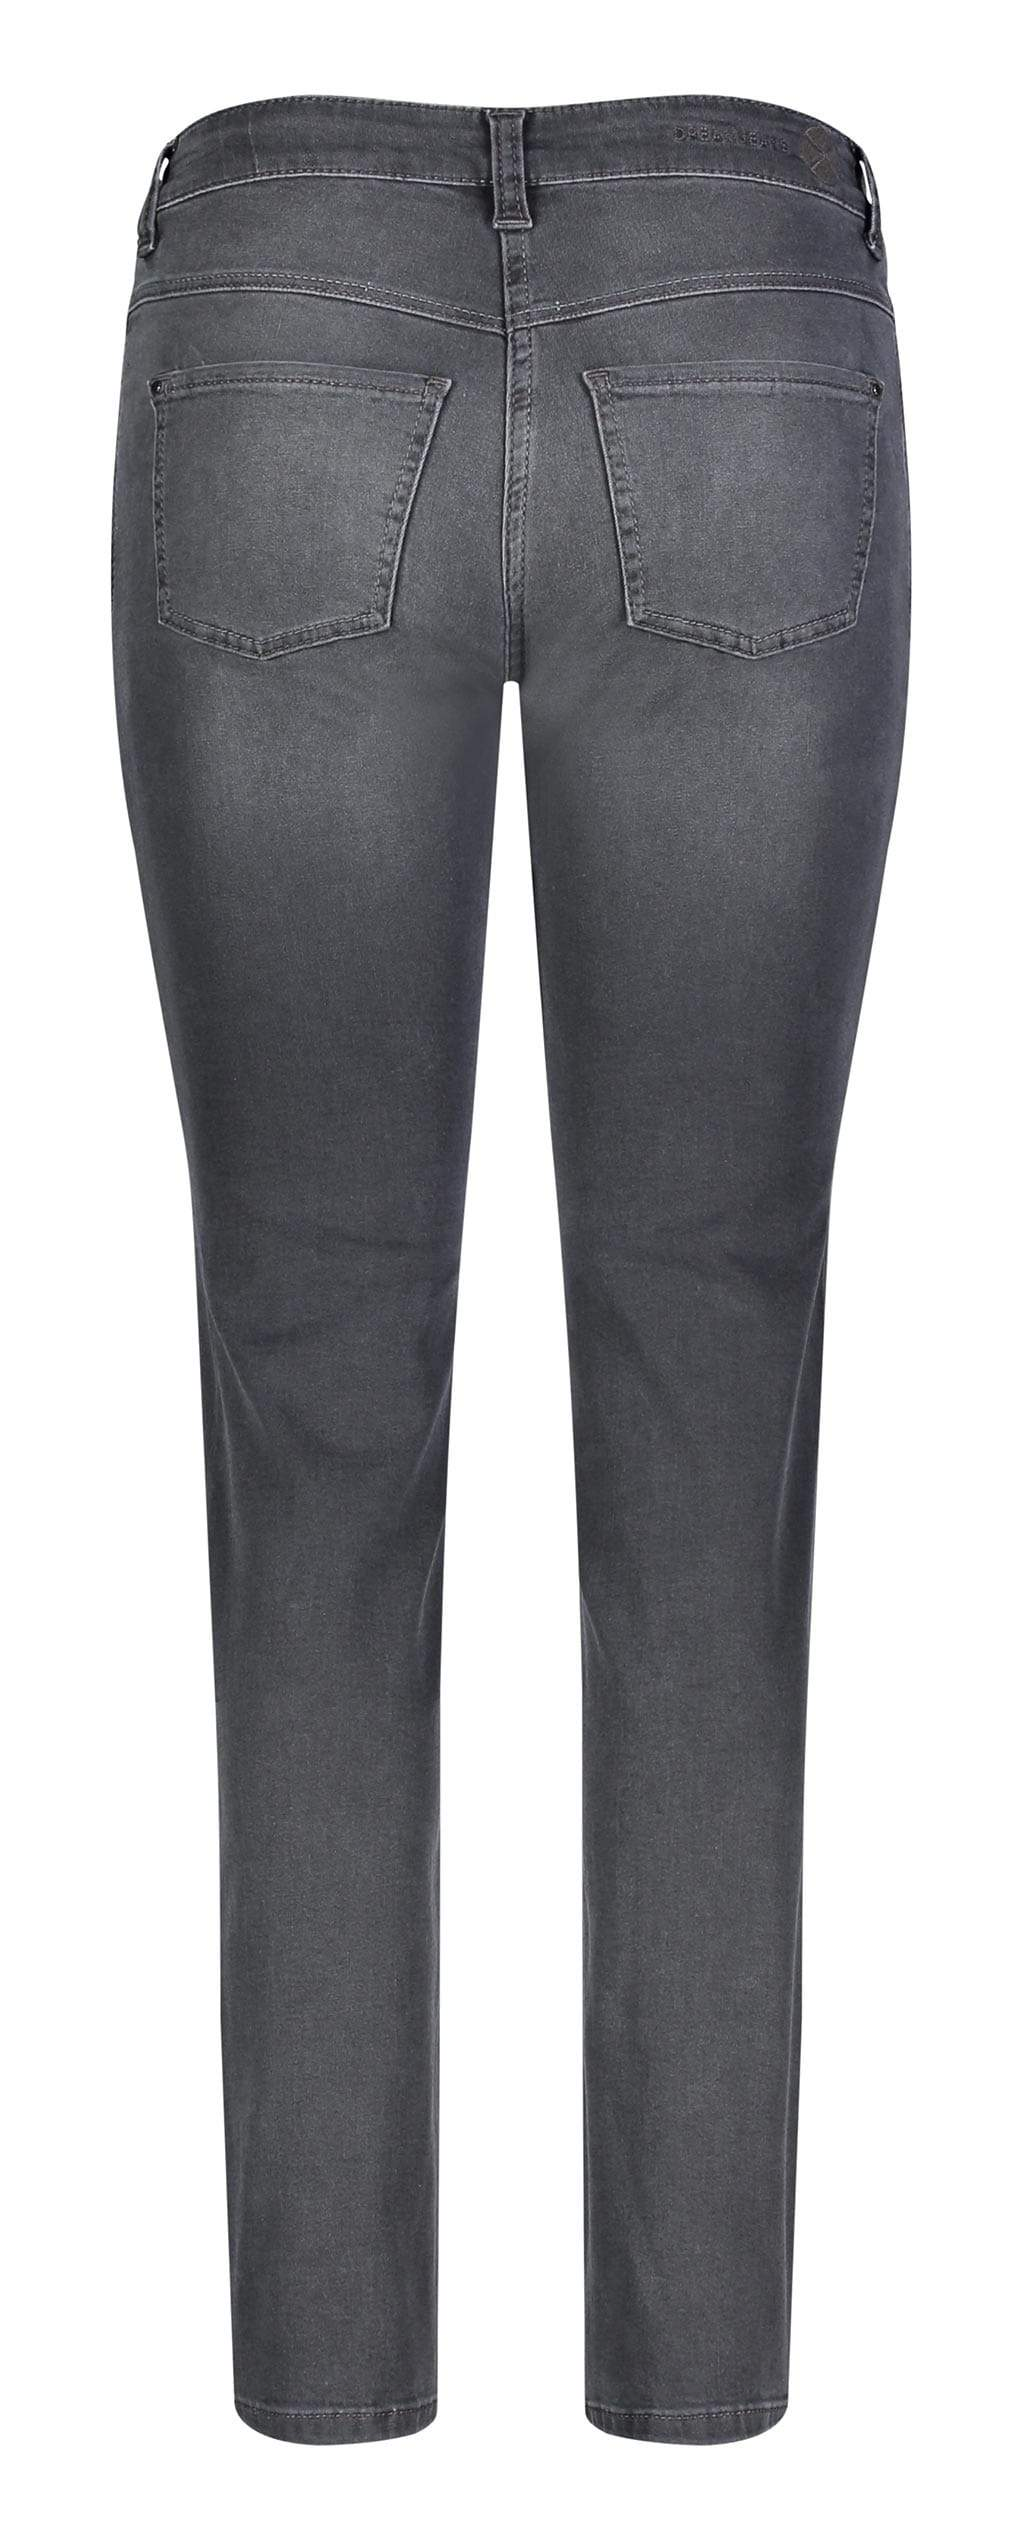 Mac Jeans Jeans Mac Dream 5401 Jeans Straight Leg D975 Dark grey Used izzi-of-baslow